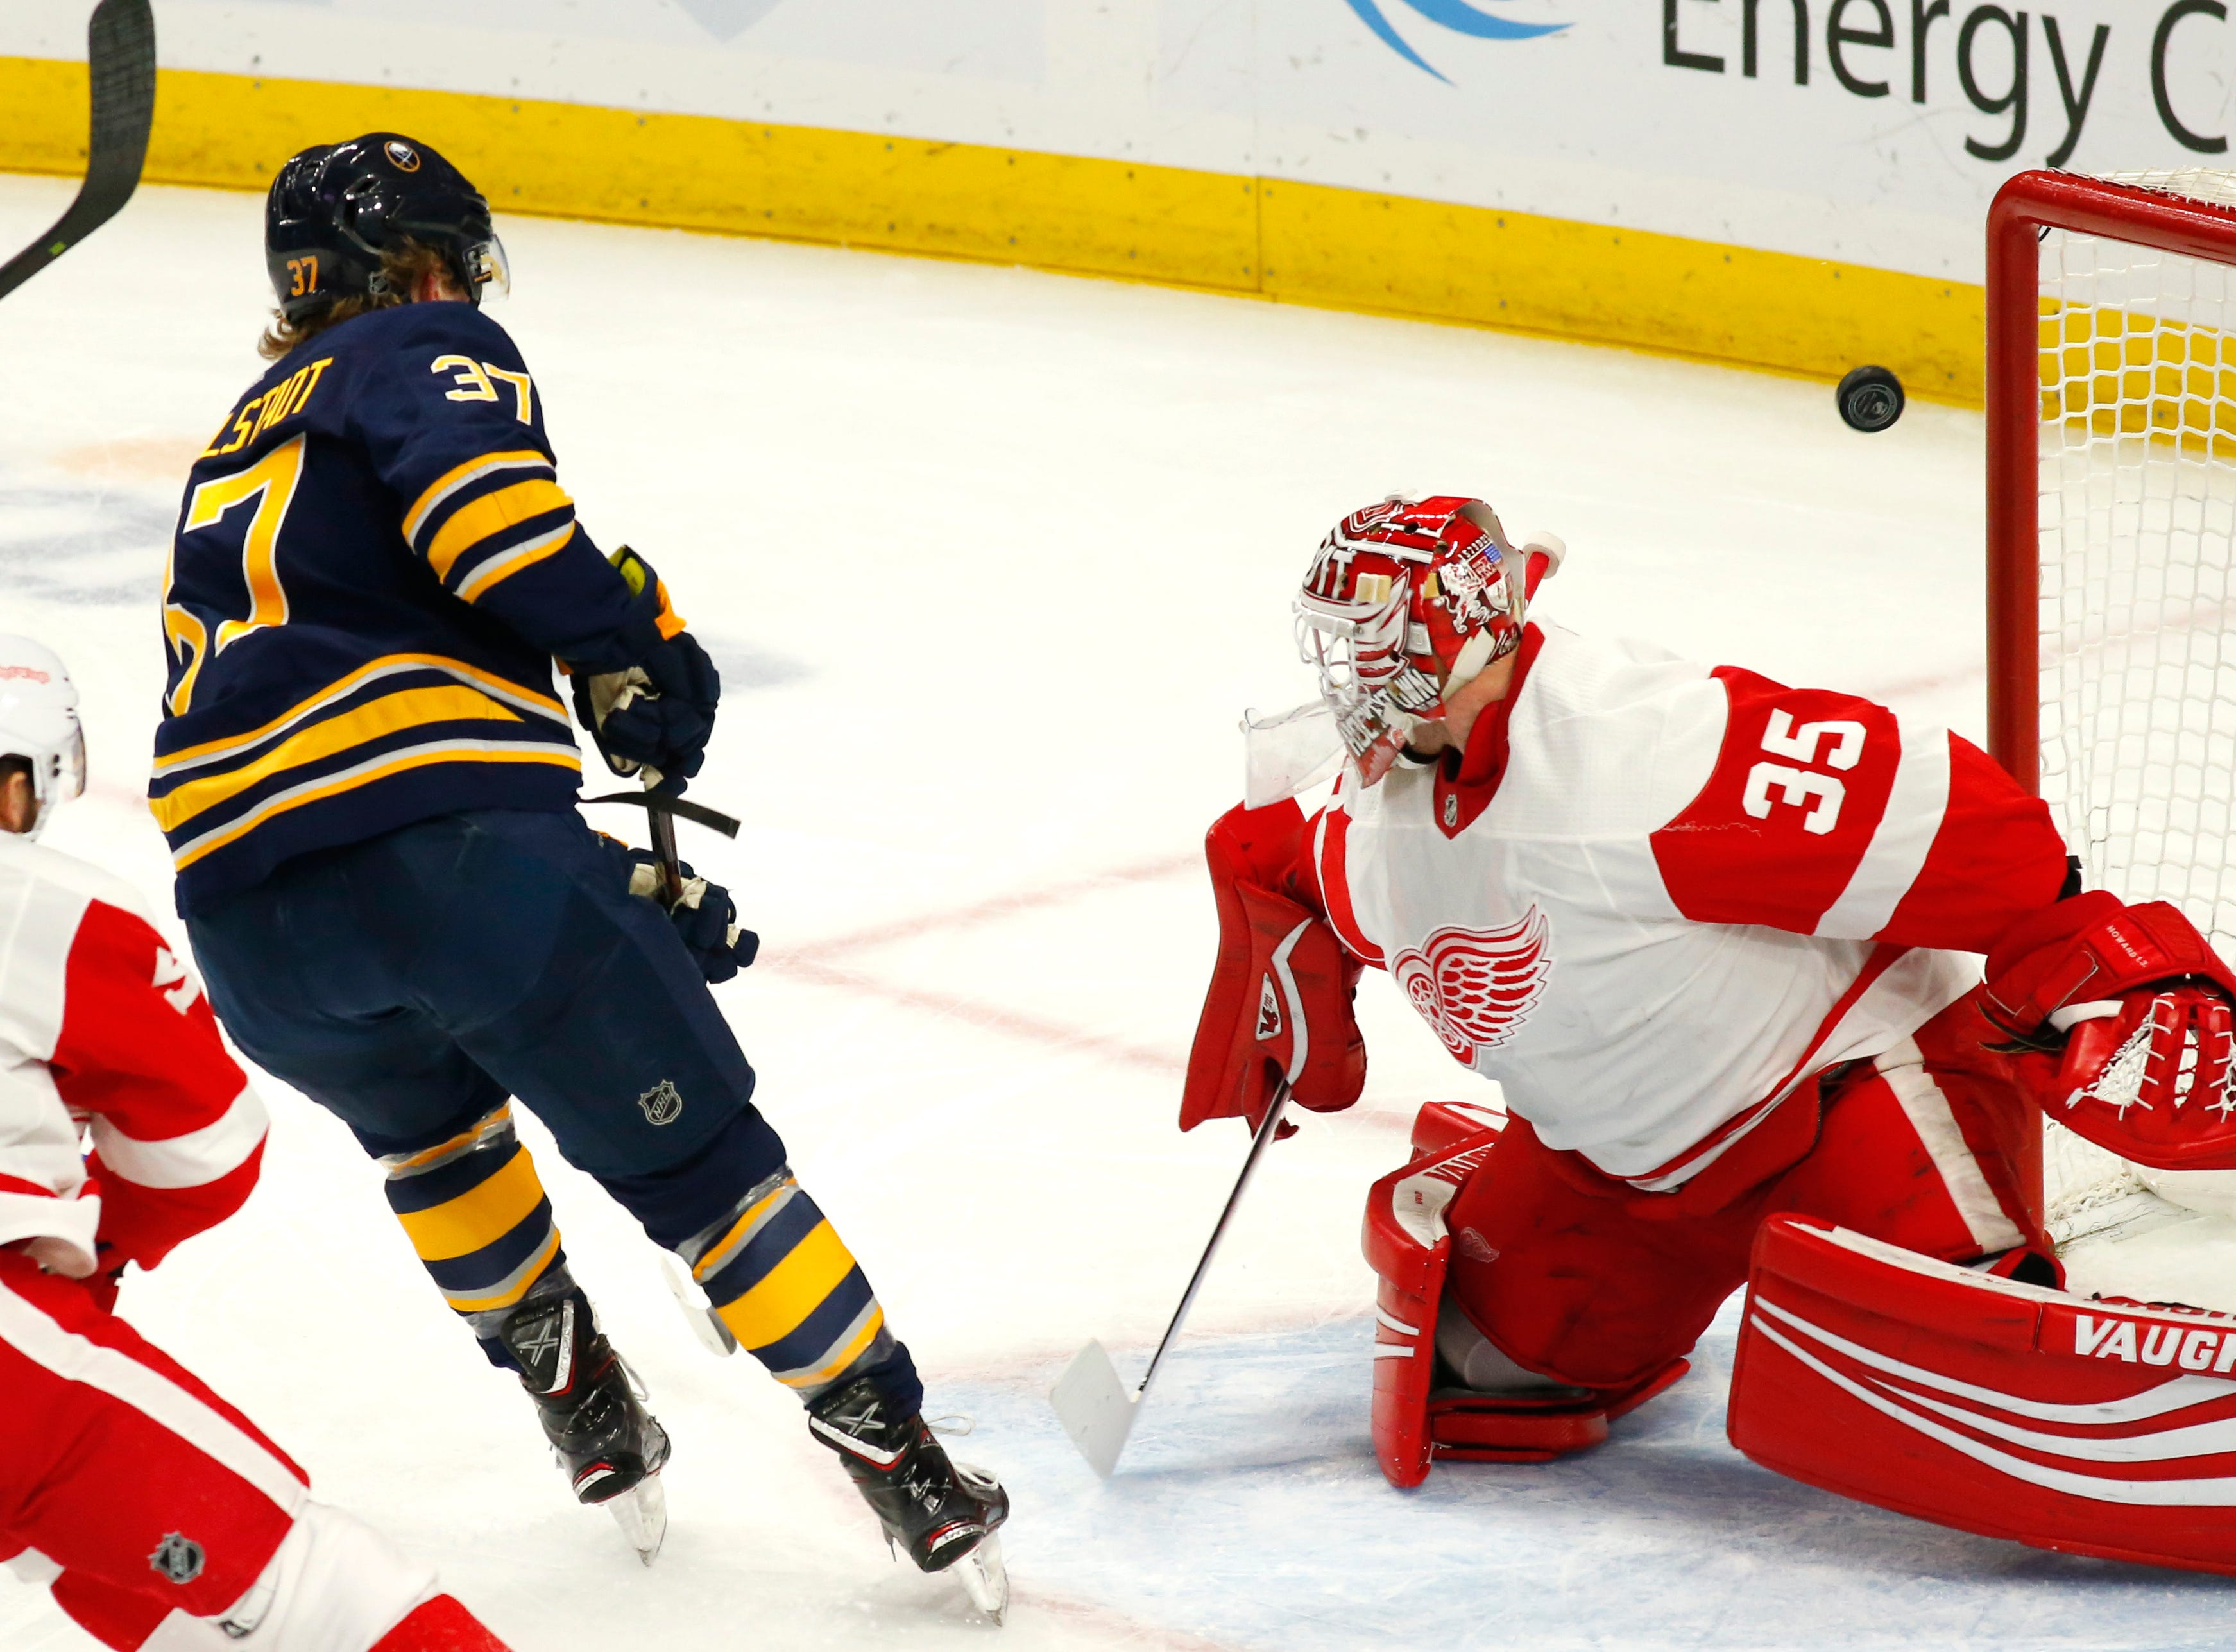 Buffalo Sabres forward Casey Mittelstadt (37) shoots the puck wide of Detroit Red Wings goalie Jimmy Howard (35) during the first period of an NHL hockey game, Saturday, Feb. 9, 2019, in Buffalo N.Y. (AP Photo/Jeffrey T. Barnes)